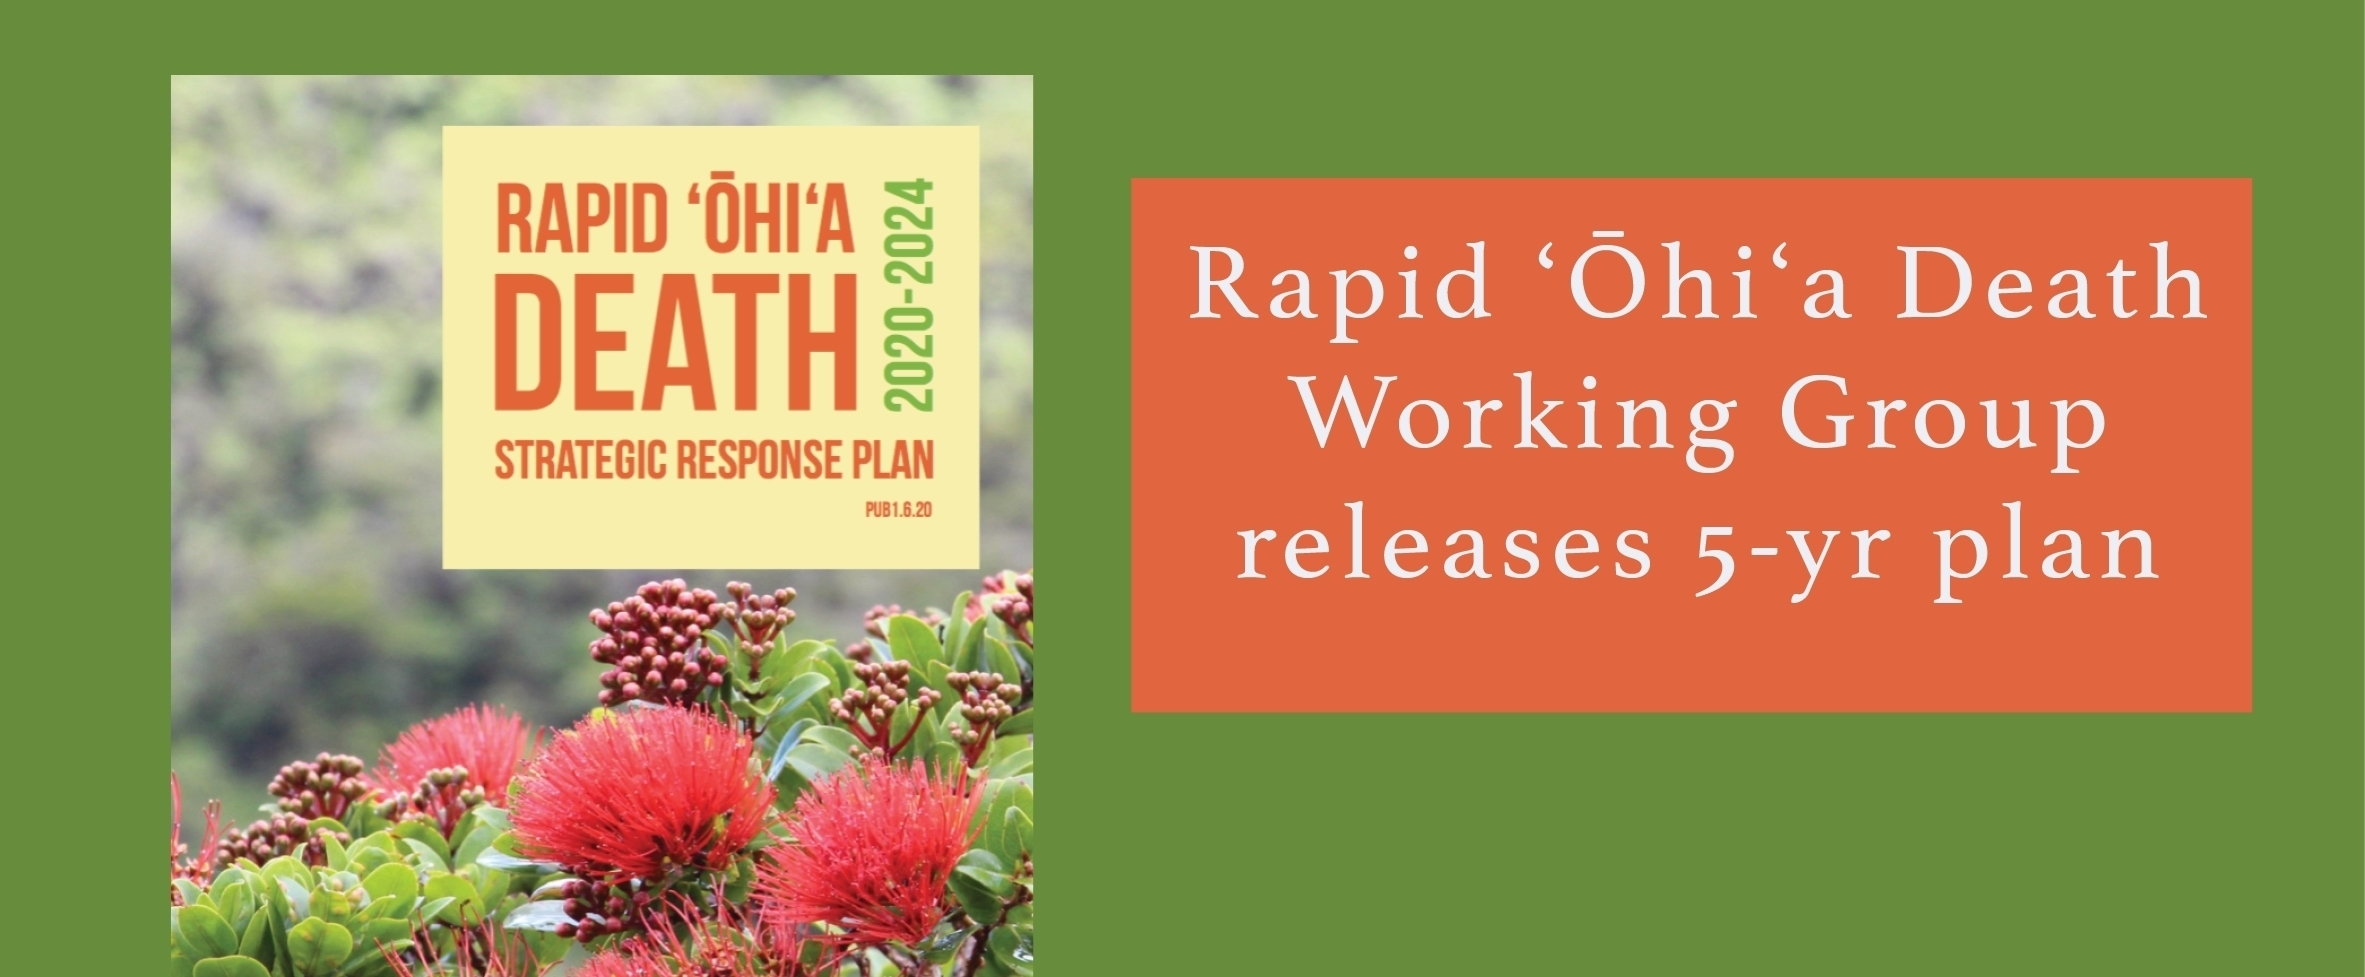 The Rapid Ohia Death Working Group, led by the Department of Land & Natural Resources, Division of Forestry and Wildlife among others, has released its second strategic response plan covering work to address ROD from 2020 to 2024.